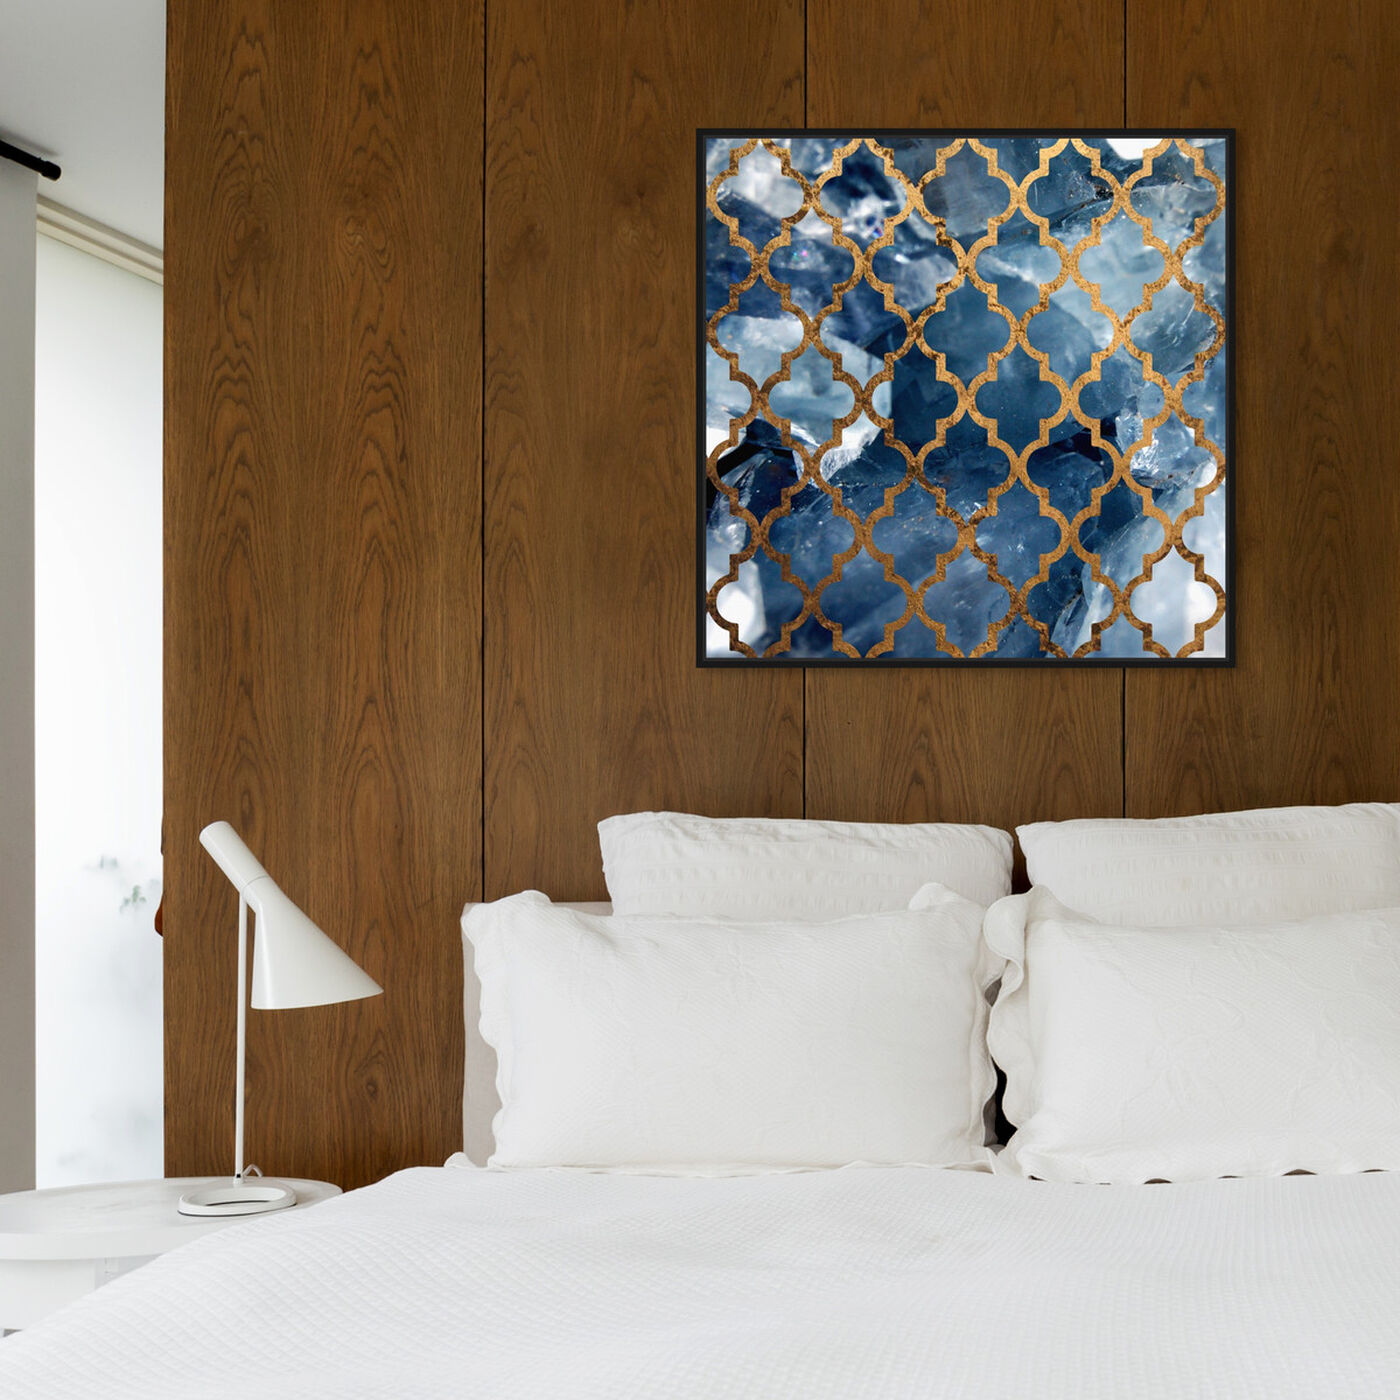 Hanging view of Arabesque Bronze featuring abstract and patterns art.